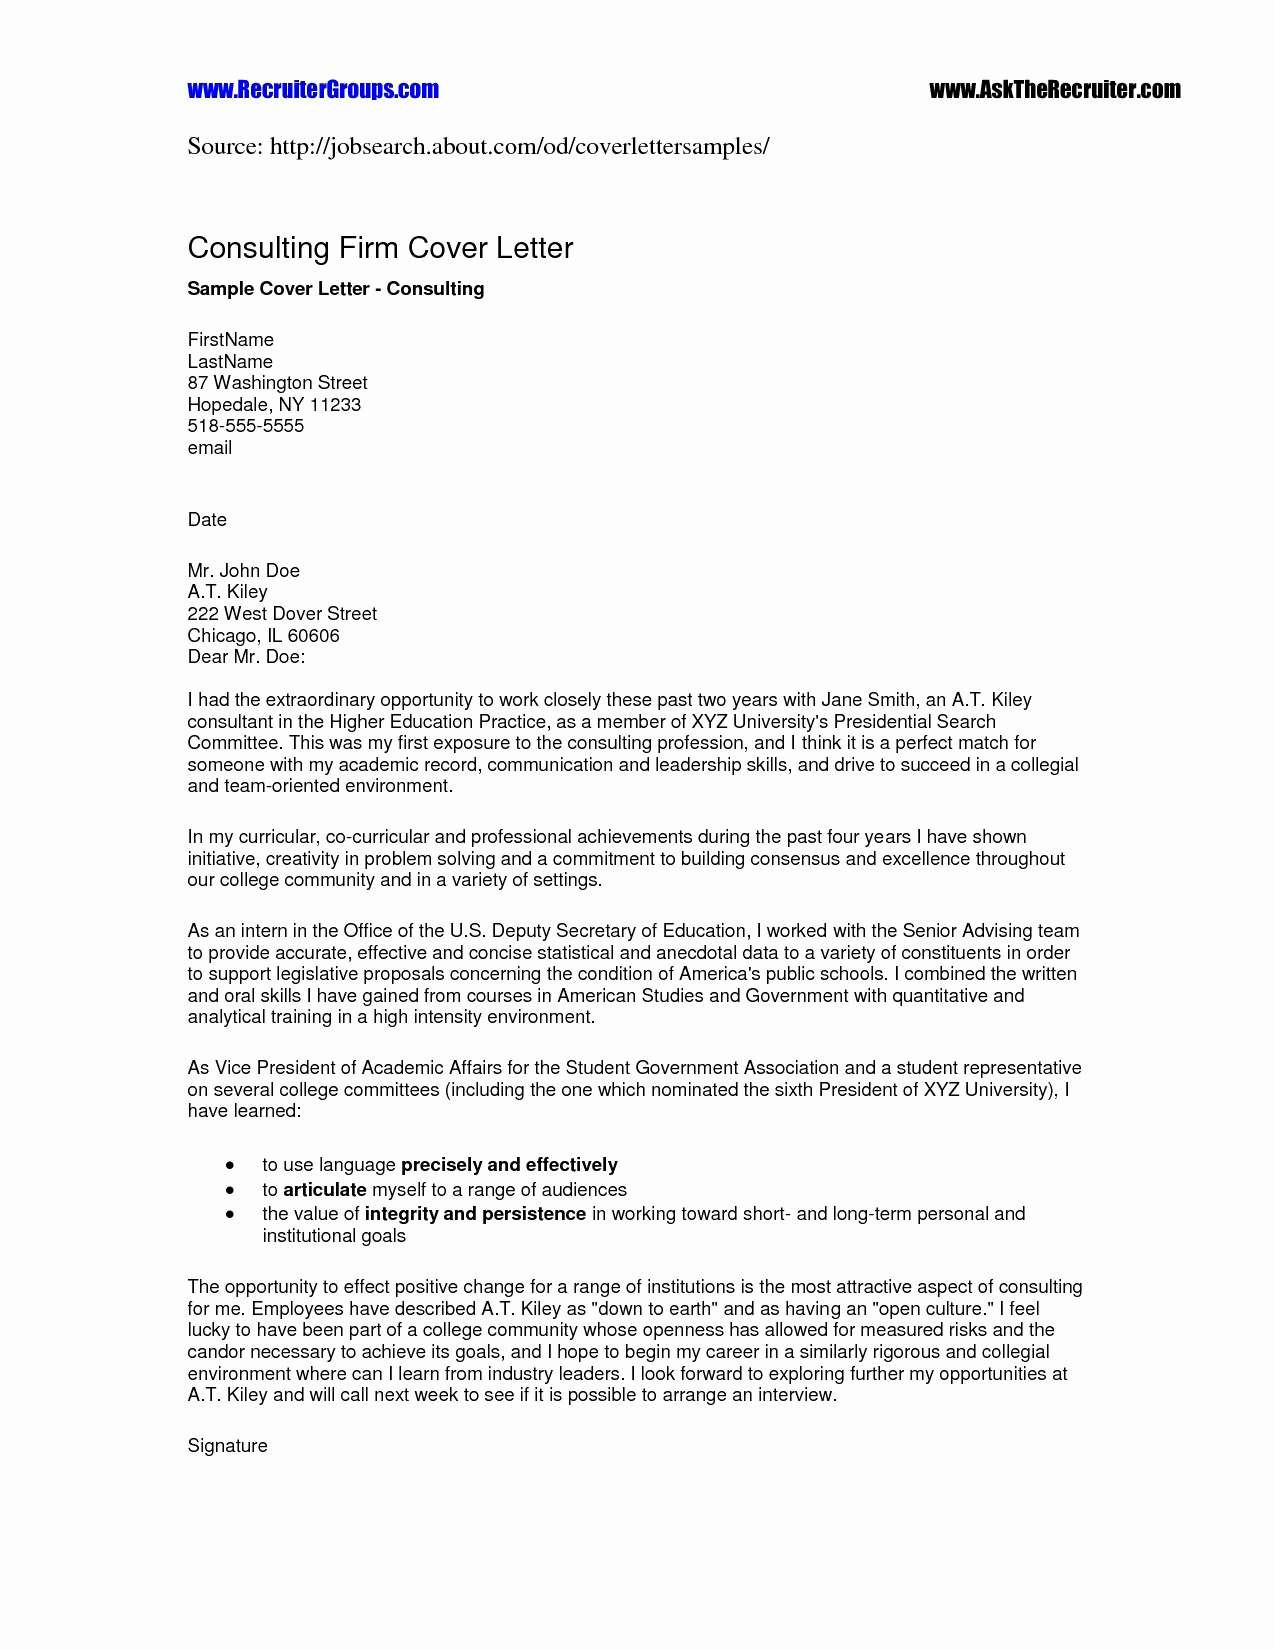 Employment Cover Letter Template Word Examples | Letter ...